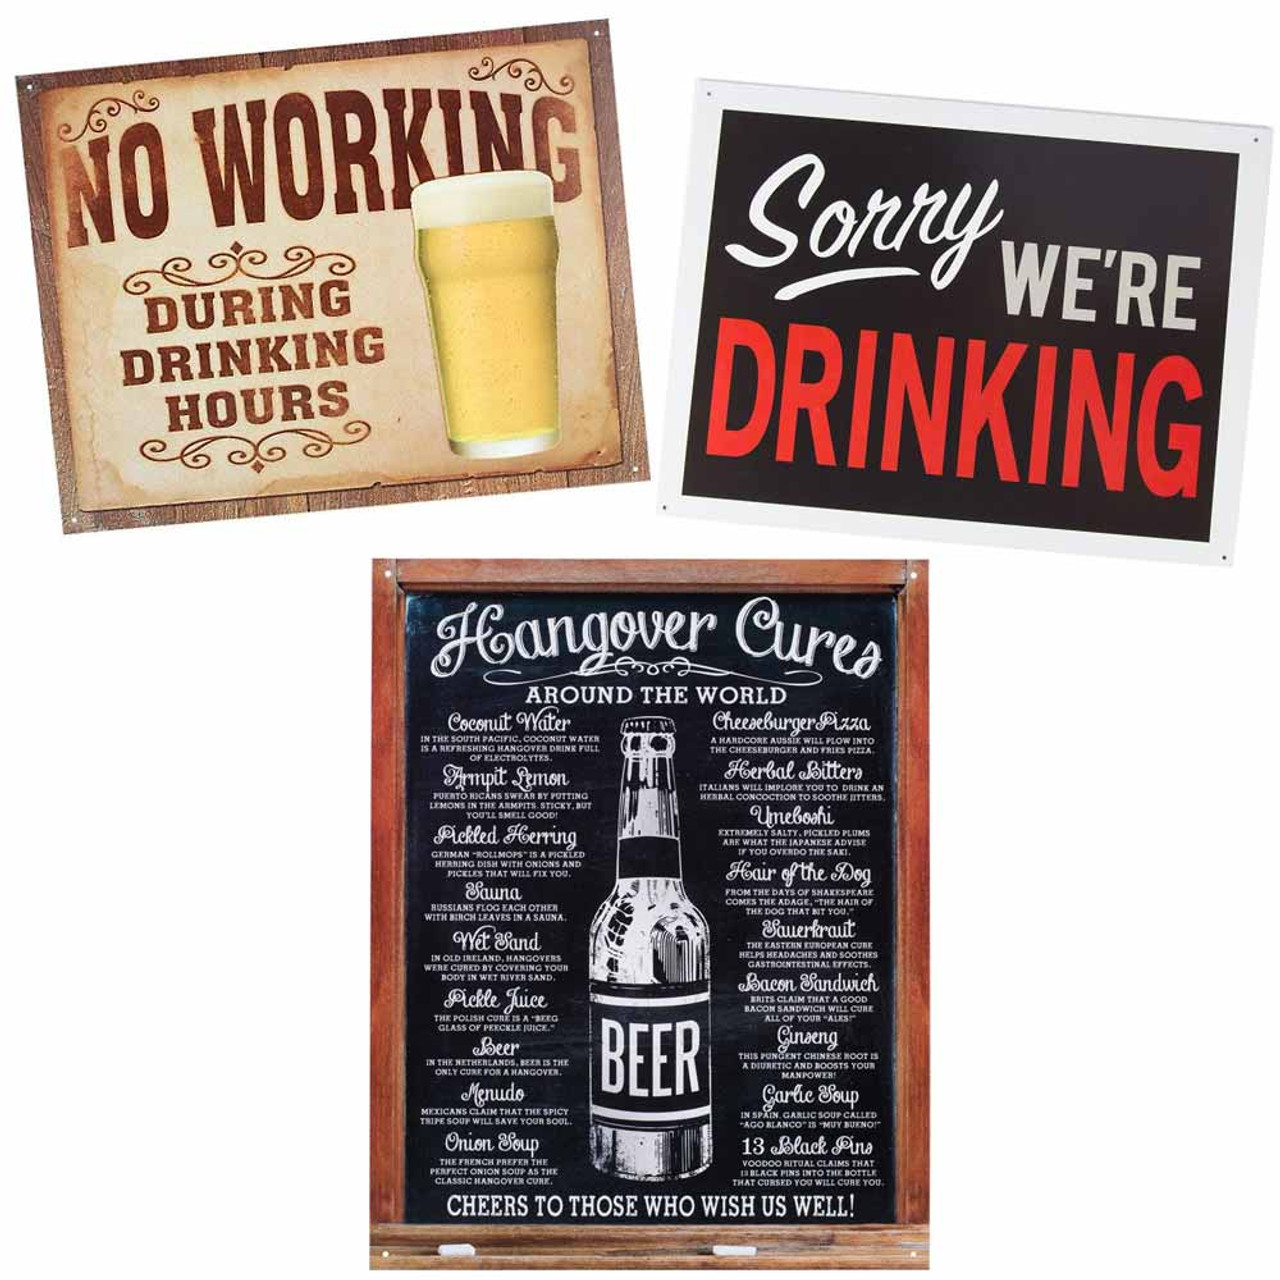 Hangover Cures Around The World funny metal sign de